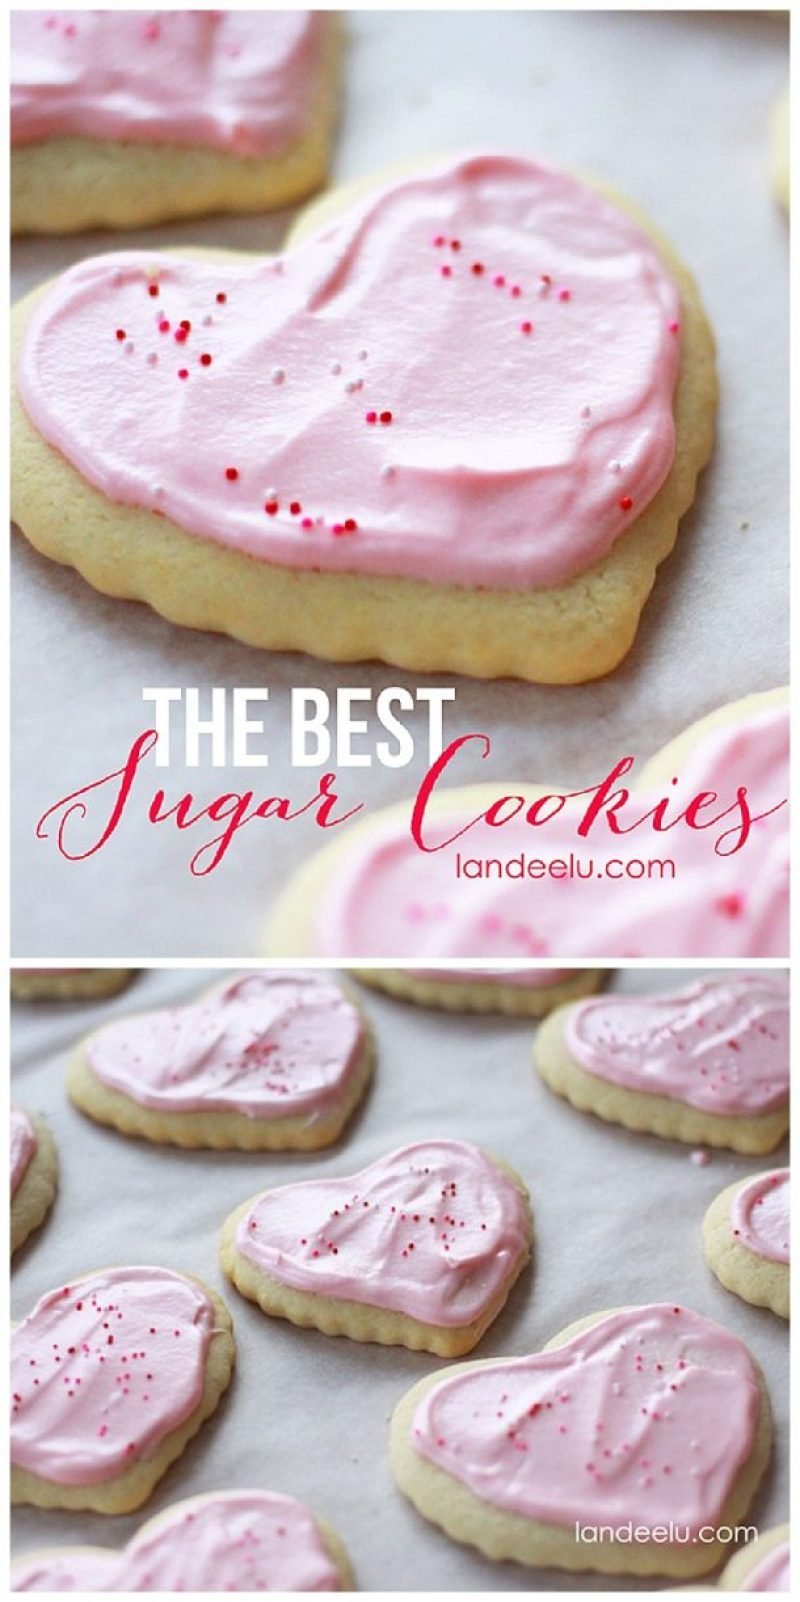 The Best Sugar Cookies Recipe for Valentine's Day or any time of year. SO yummy!